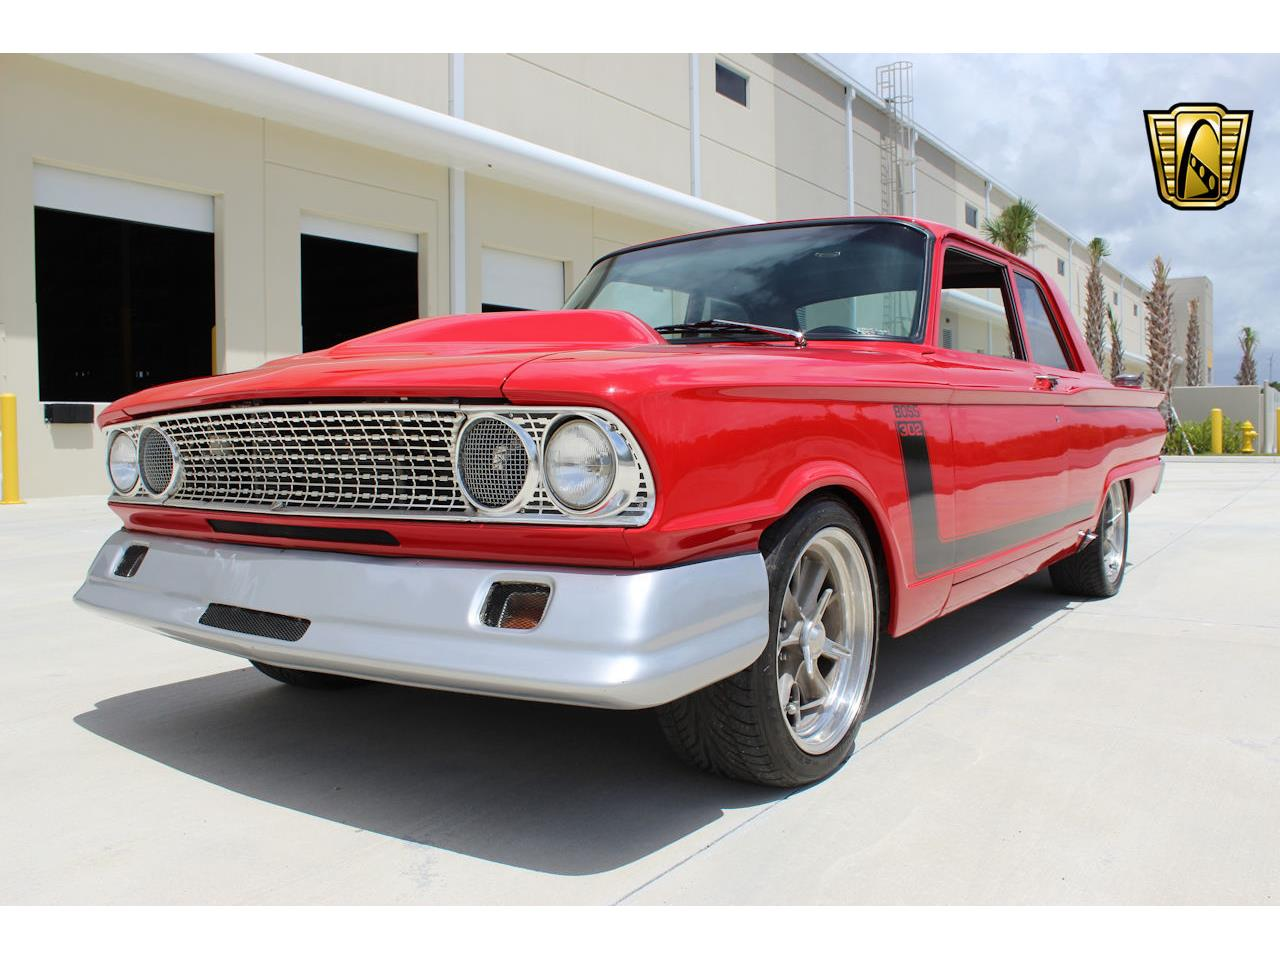 Large Picture of Classic 1963 Ford Fairlane located in Florida Offered by Gateway Classic Cars - Fort Lauderdale - MSBB